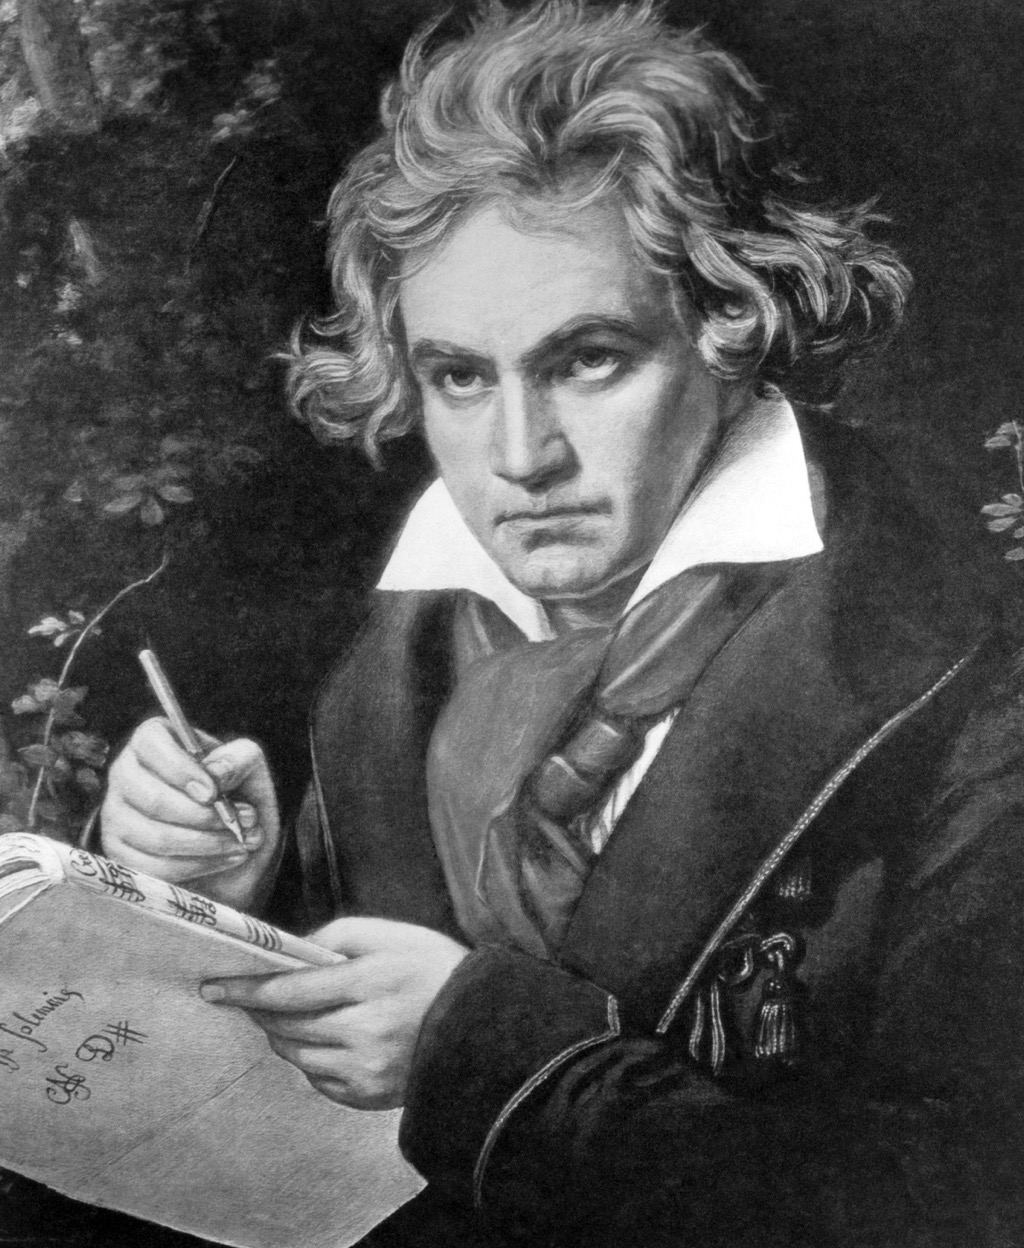 Beethoven, who had a witty put-down